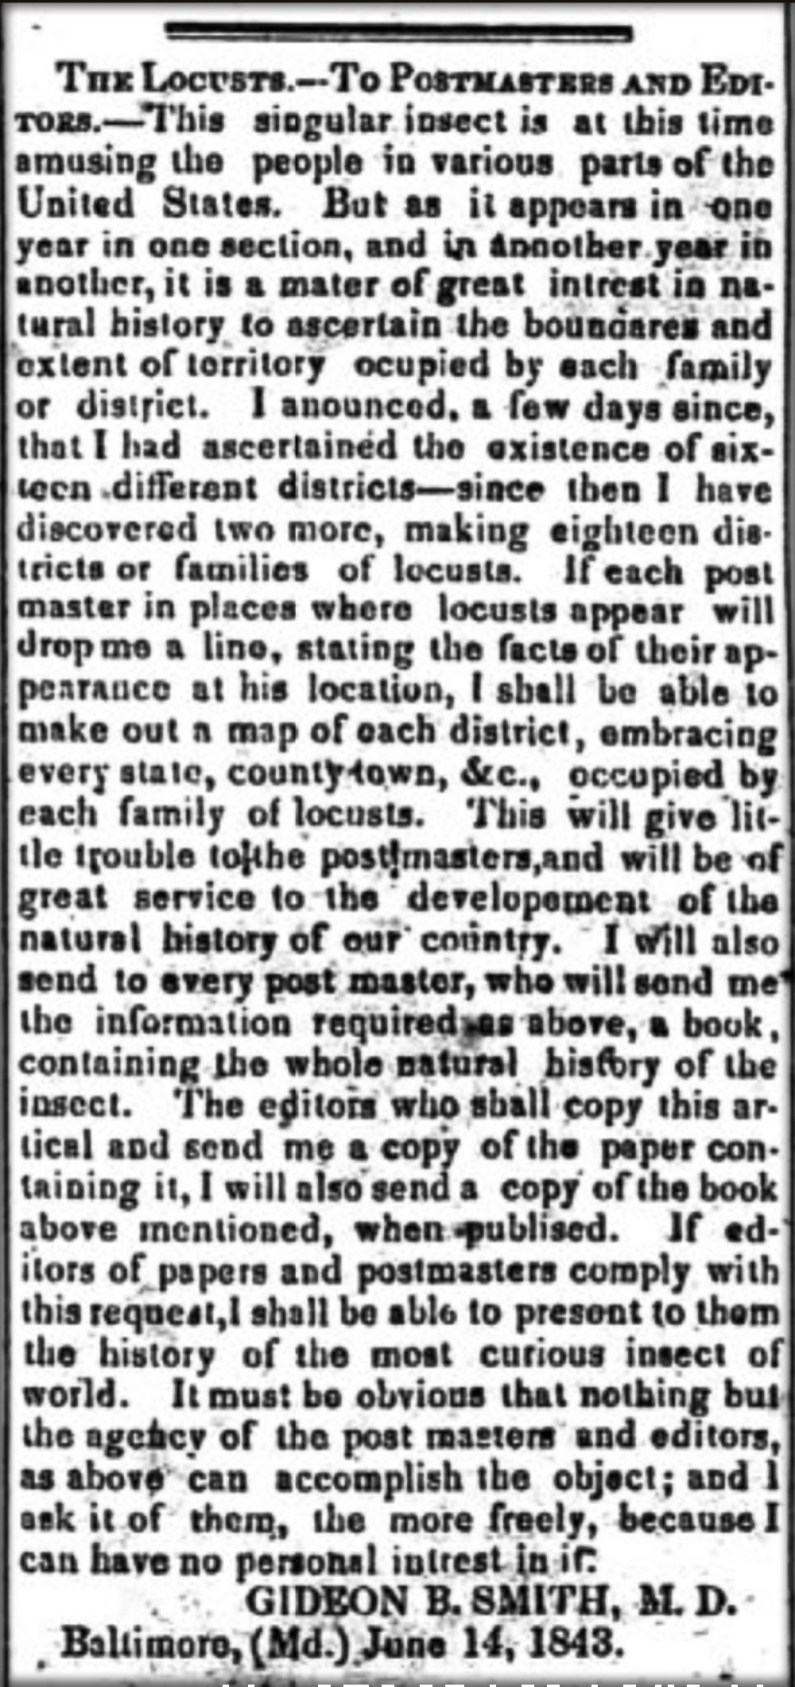 Gideon Smith's Ad for Observations, July 14, 1843. Image: Yazoo City Whig and Political Register.